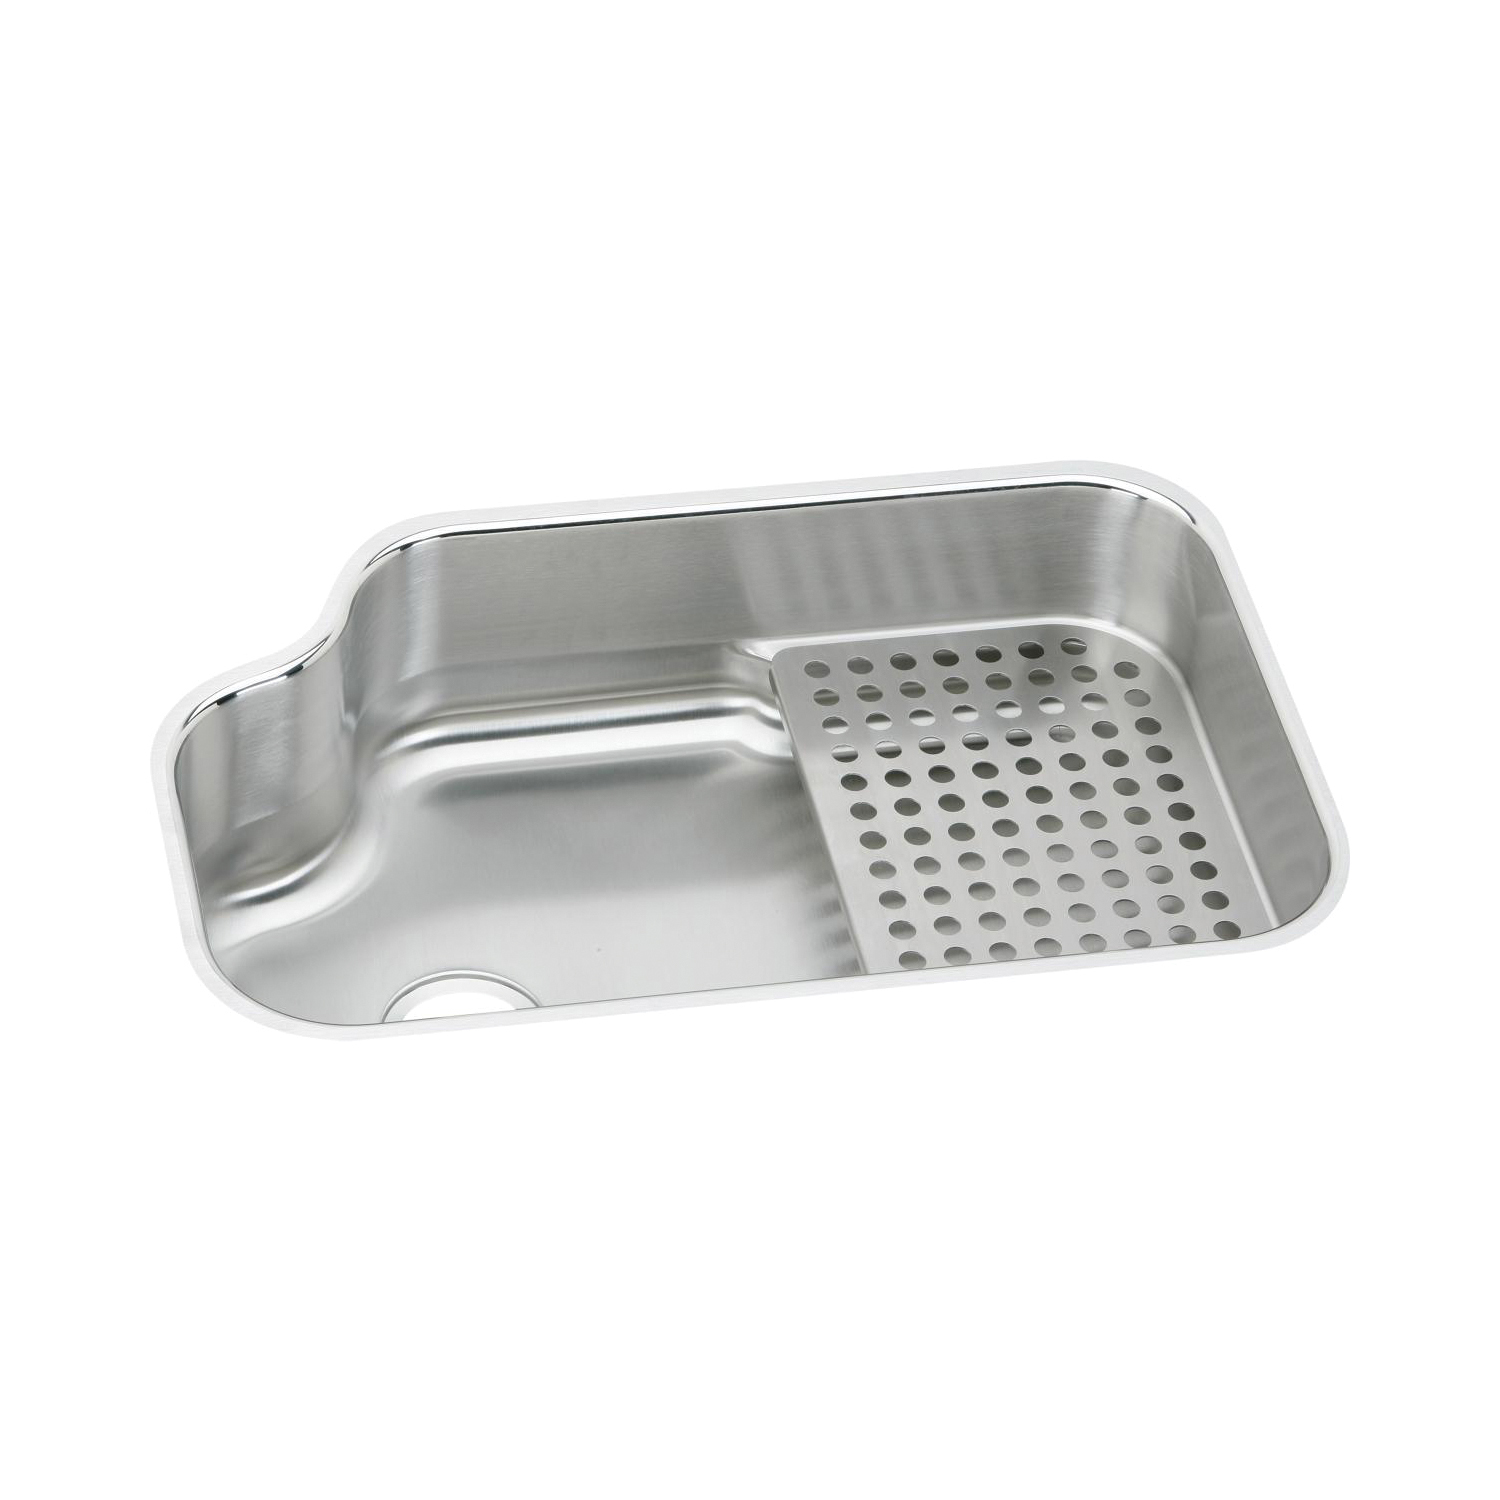 Elkay® MYSTIC3021BG The Mystic® Kitchen Sink Kit, 21 in W x 8 in D x 32 in H, Under Mount, Stainless Steel, Lustertone, Domestic